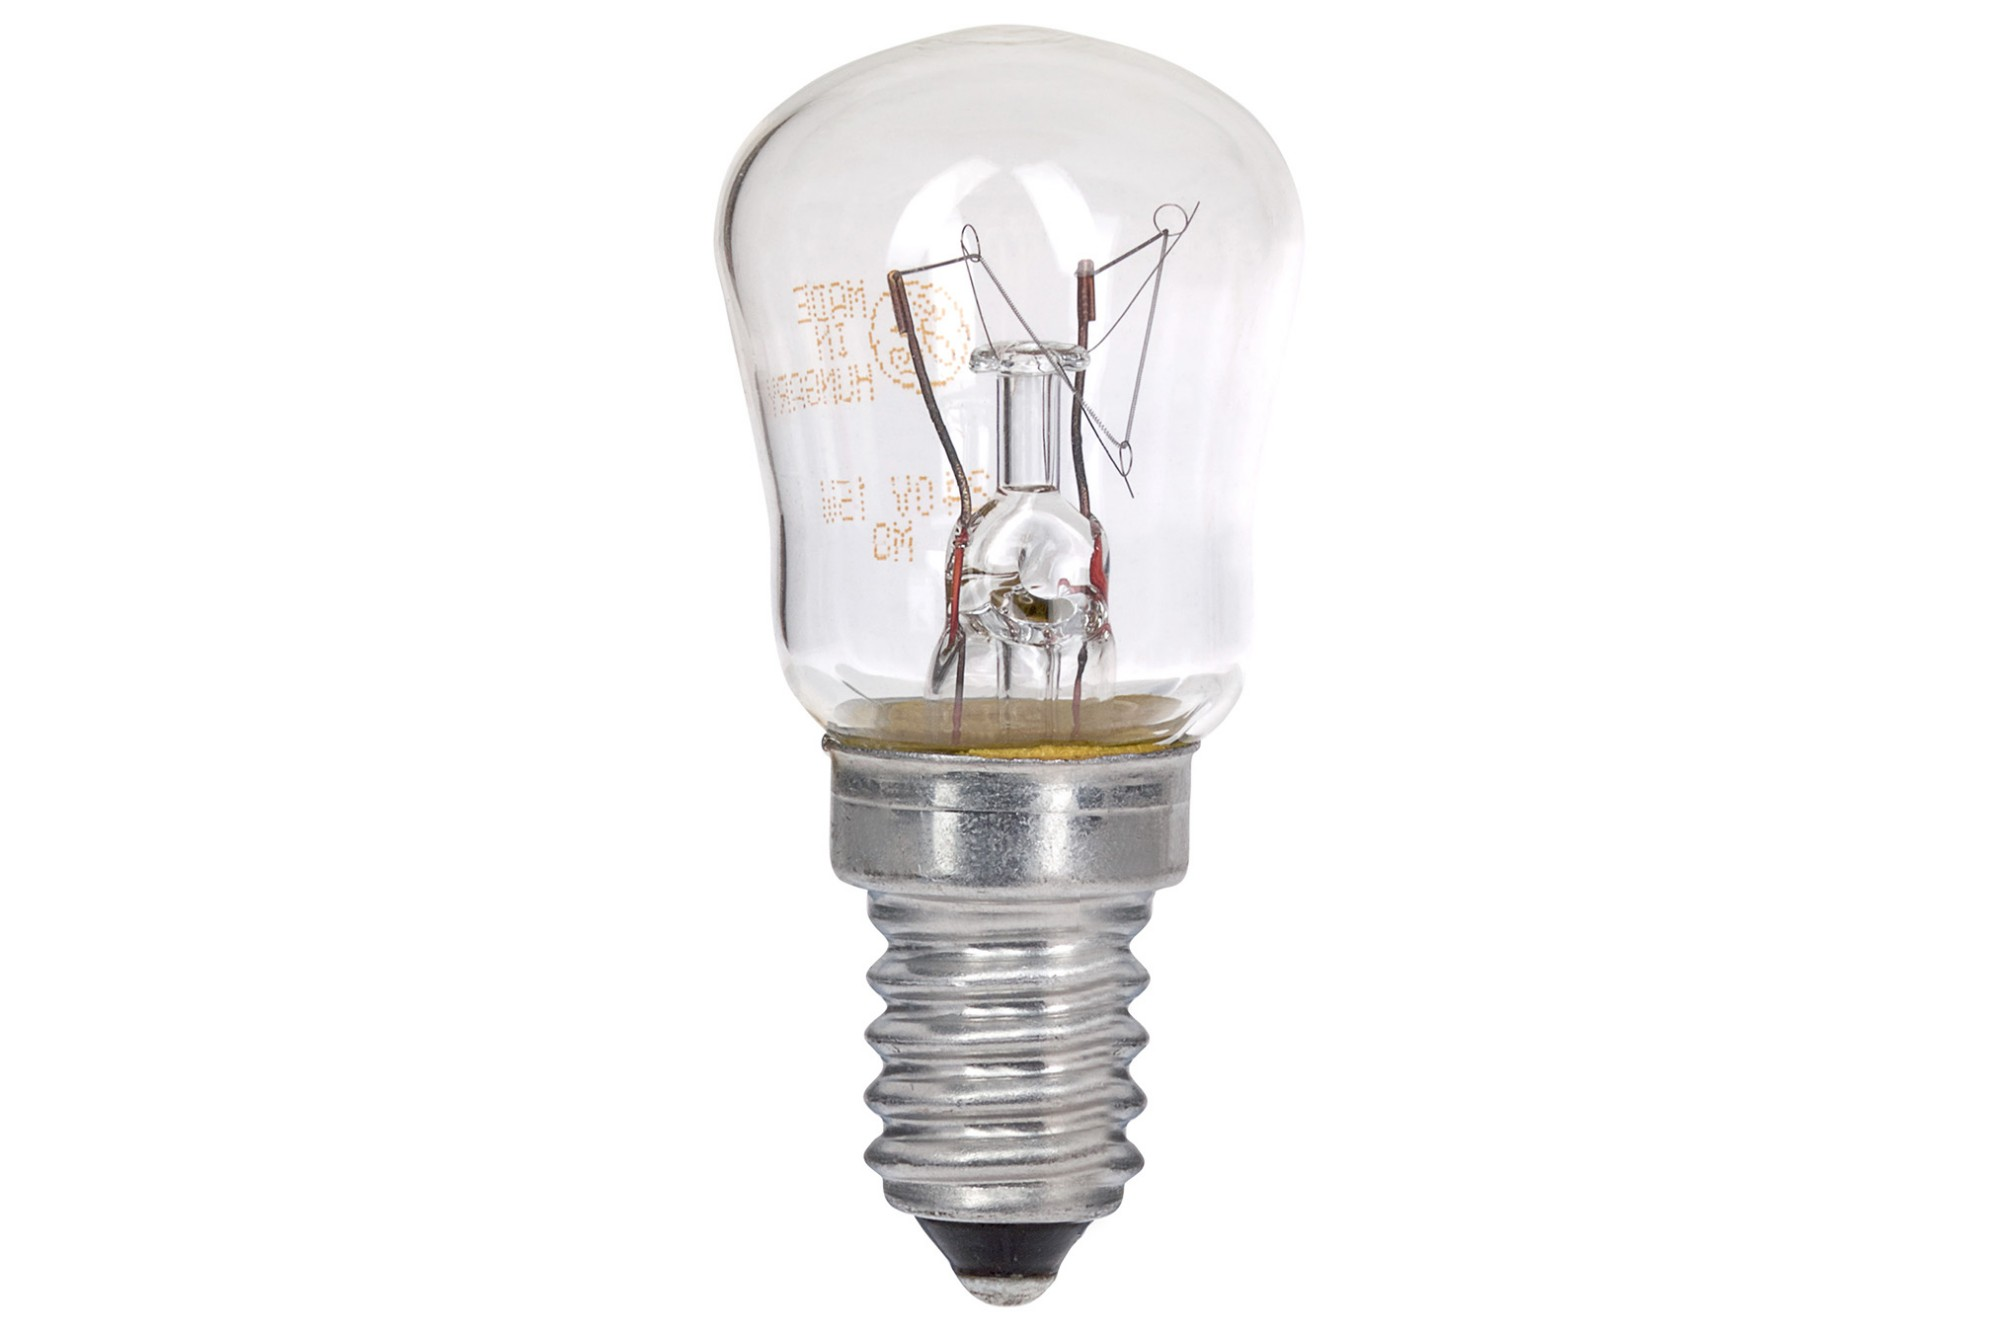 DS48 15W E14 SES Pygmy Freezer 240v Lamp Light Bulb - Clear